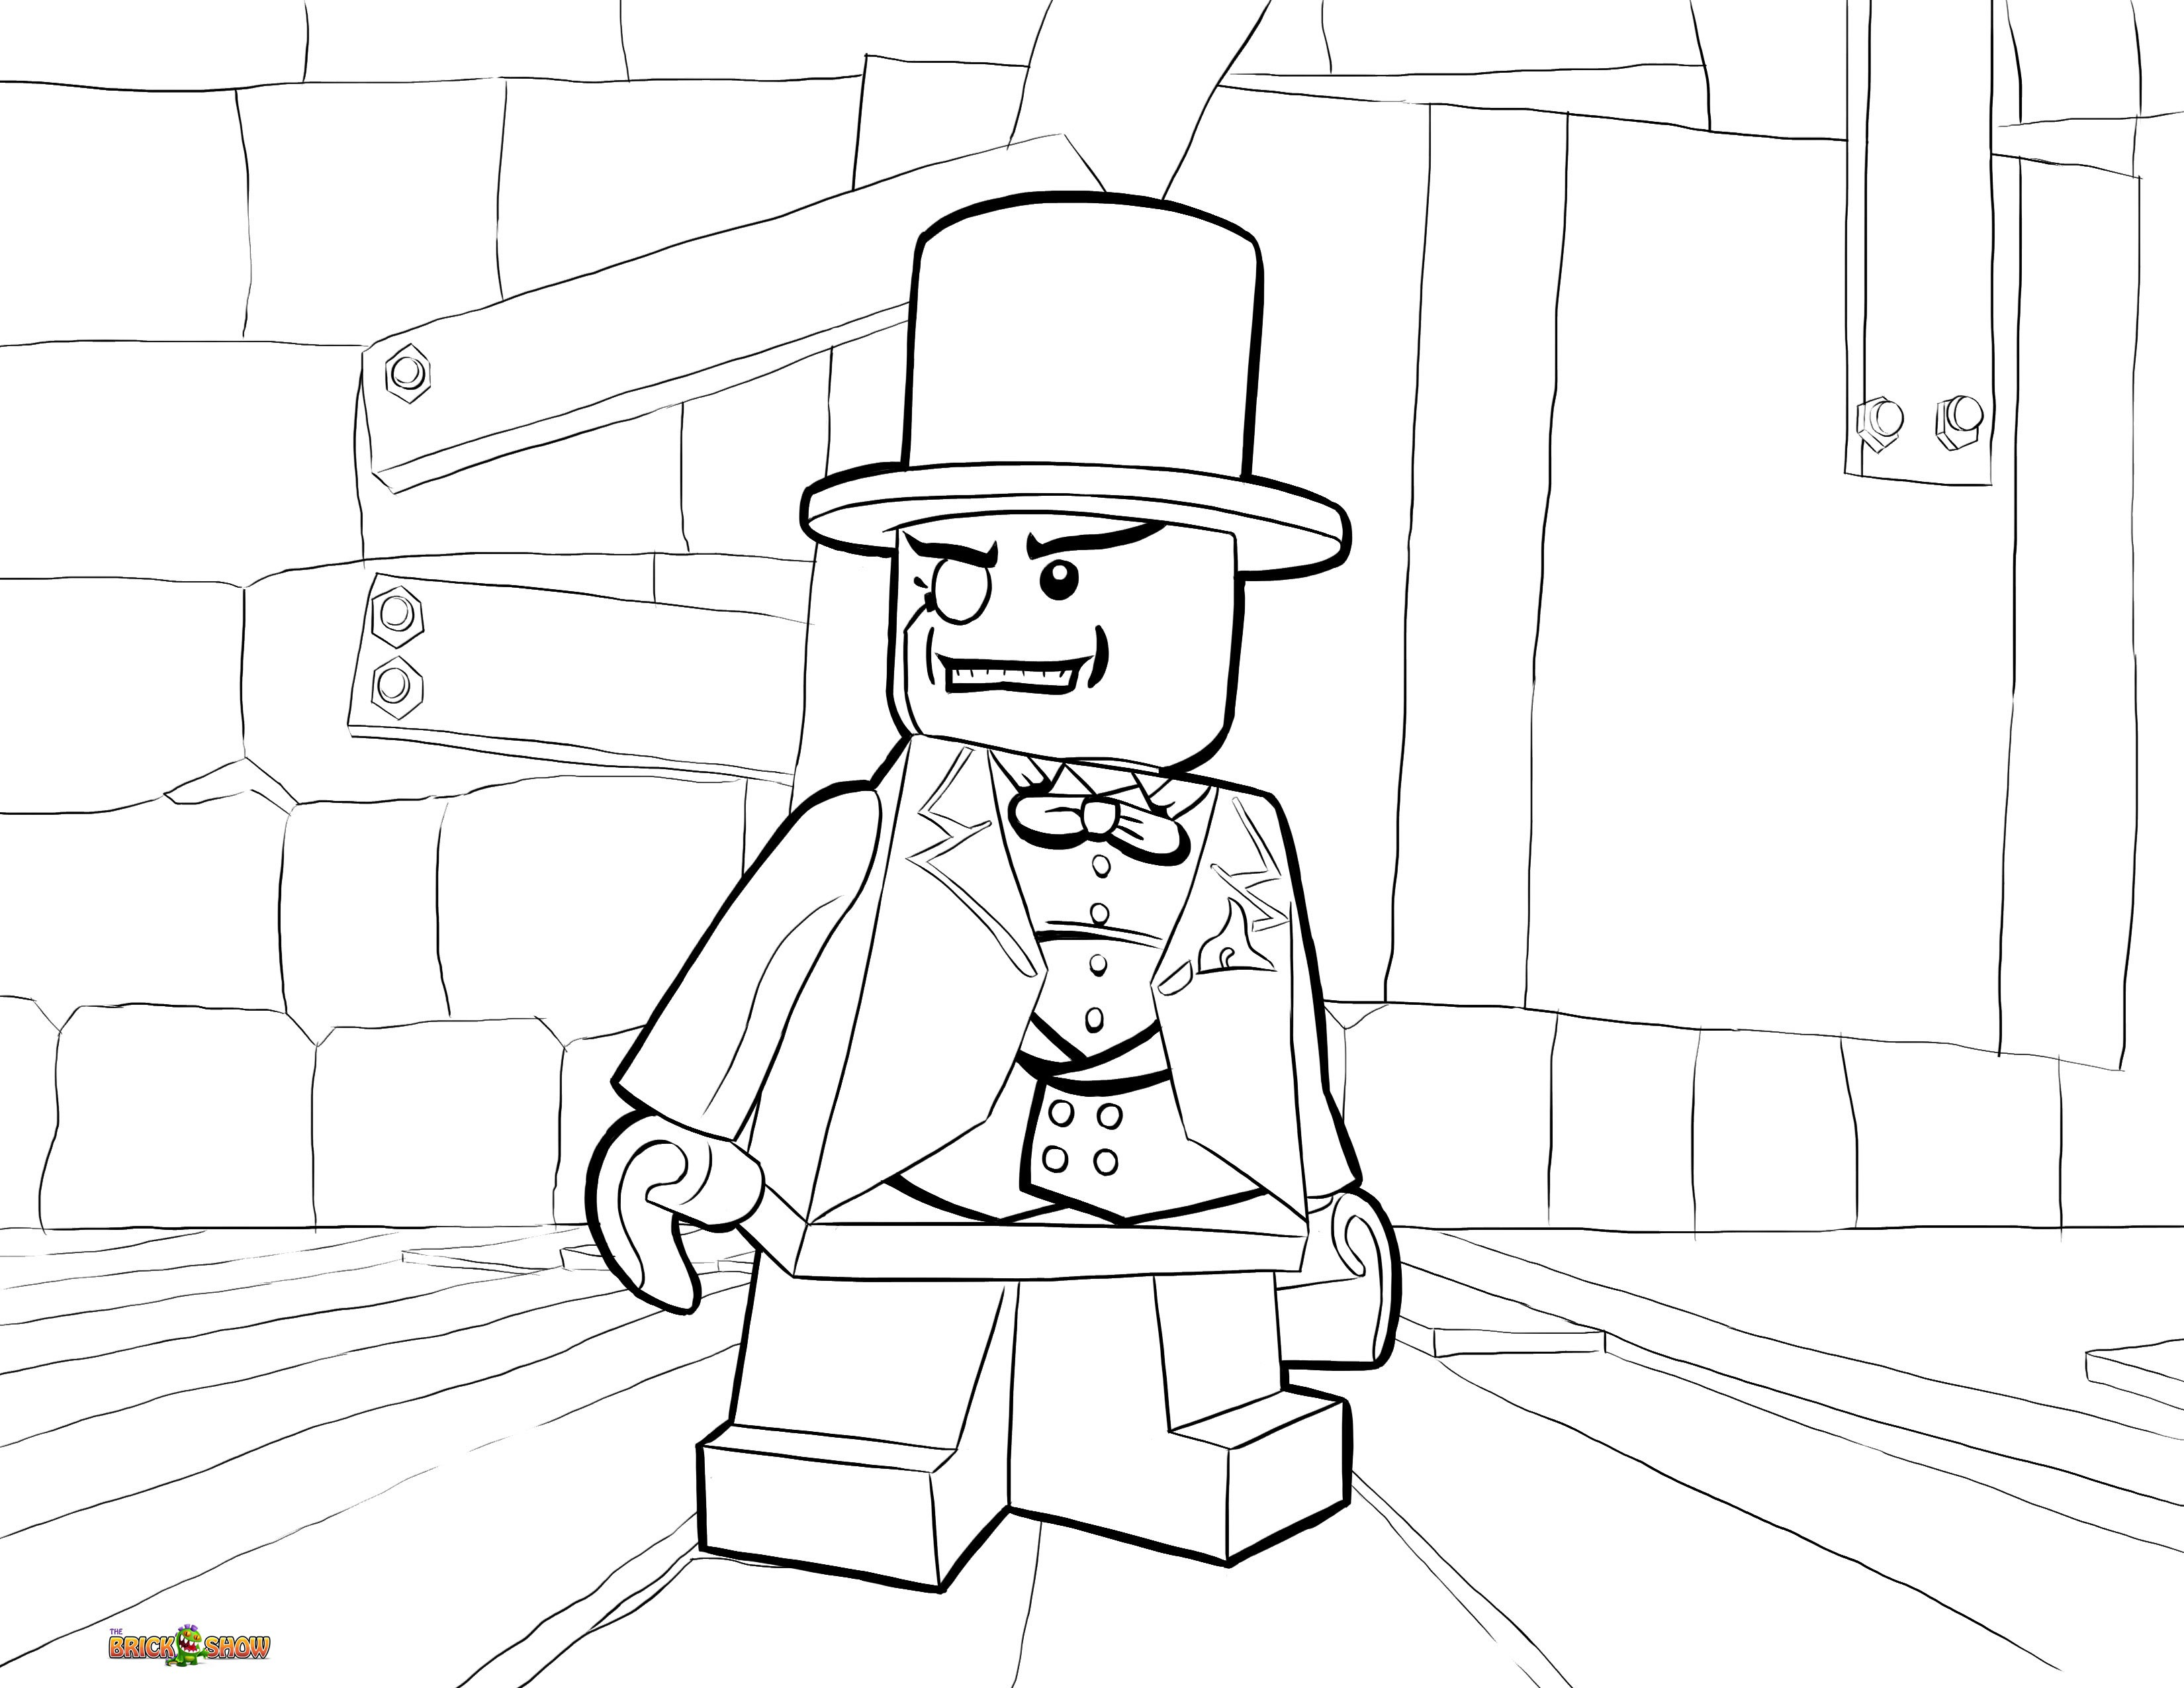 coloring picture lego lego coloring pages download and print lego coloring pages picture coloring lego 1 1